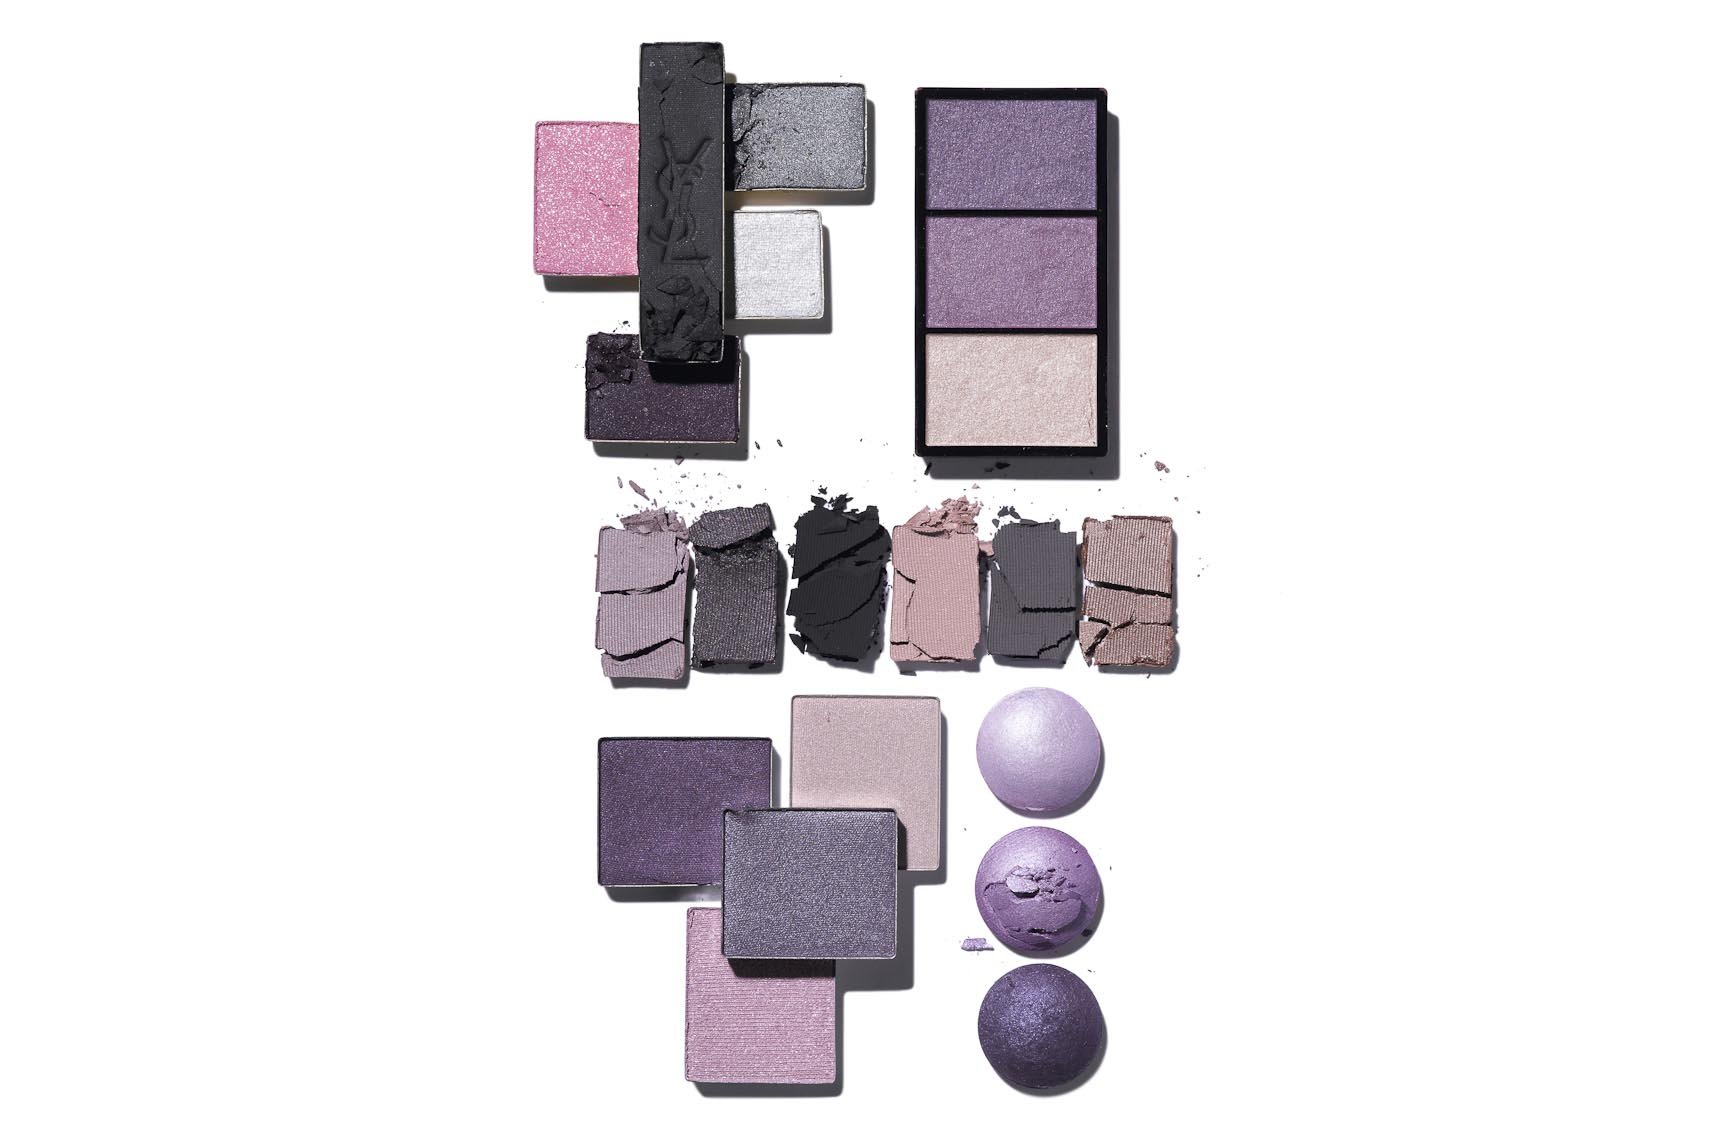 Cosmetics, Eyeshadow in Shades of Lilac, Loose and Crushed - Mike Lorrig